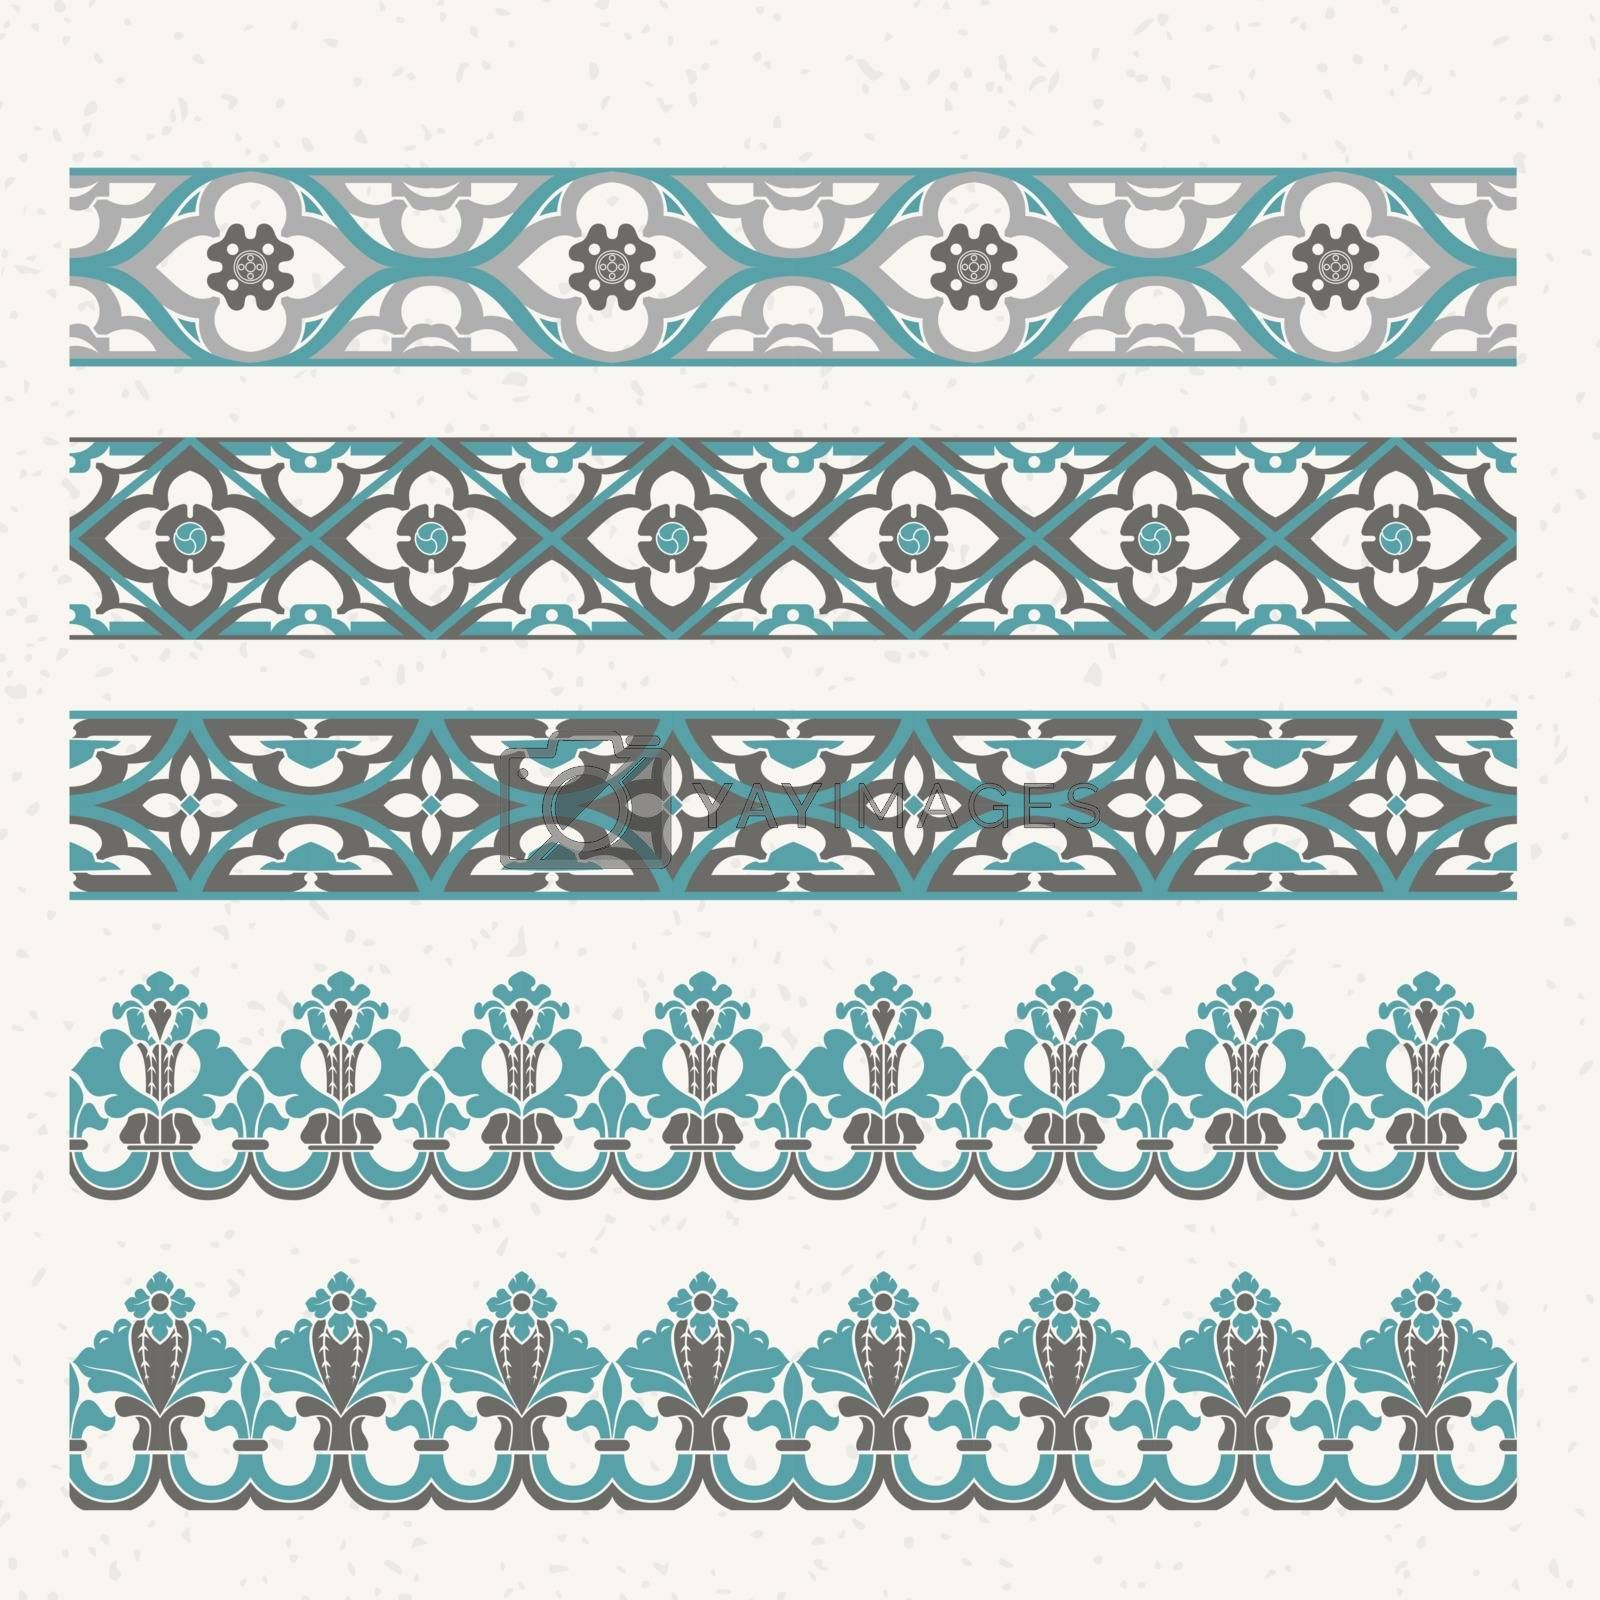 Decorative border with floral elements